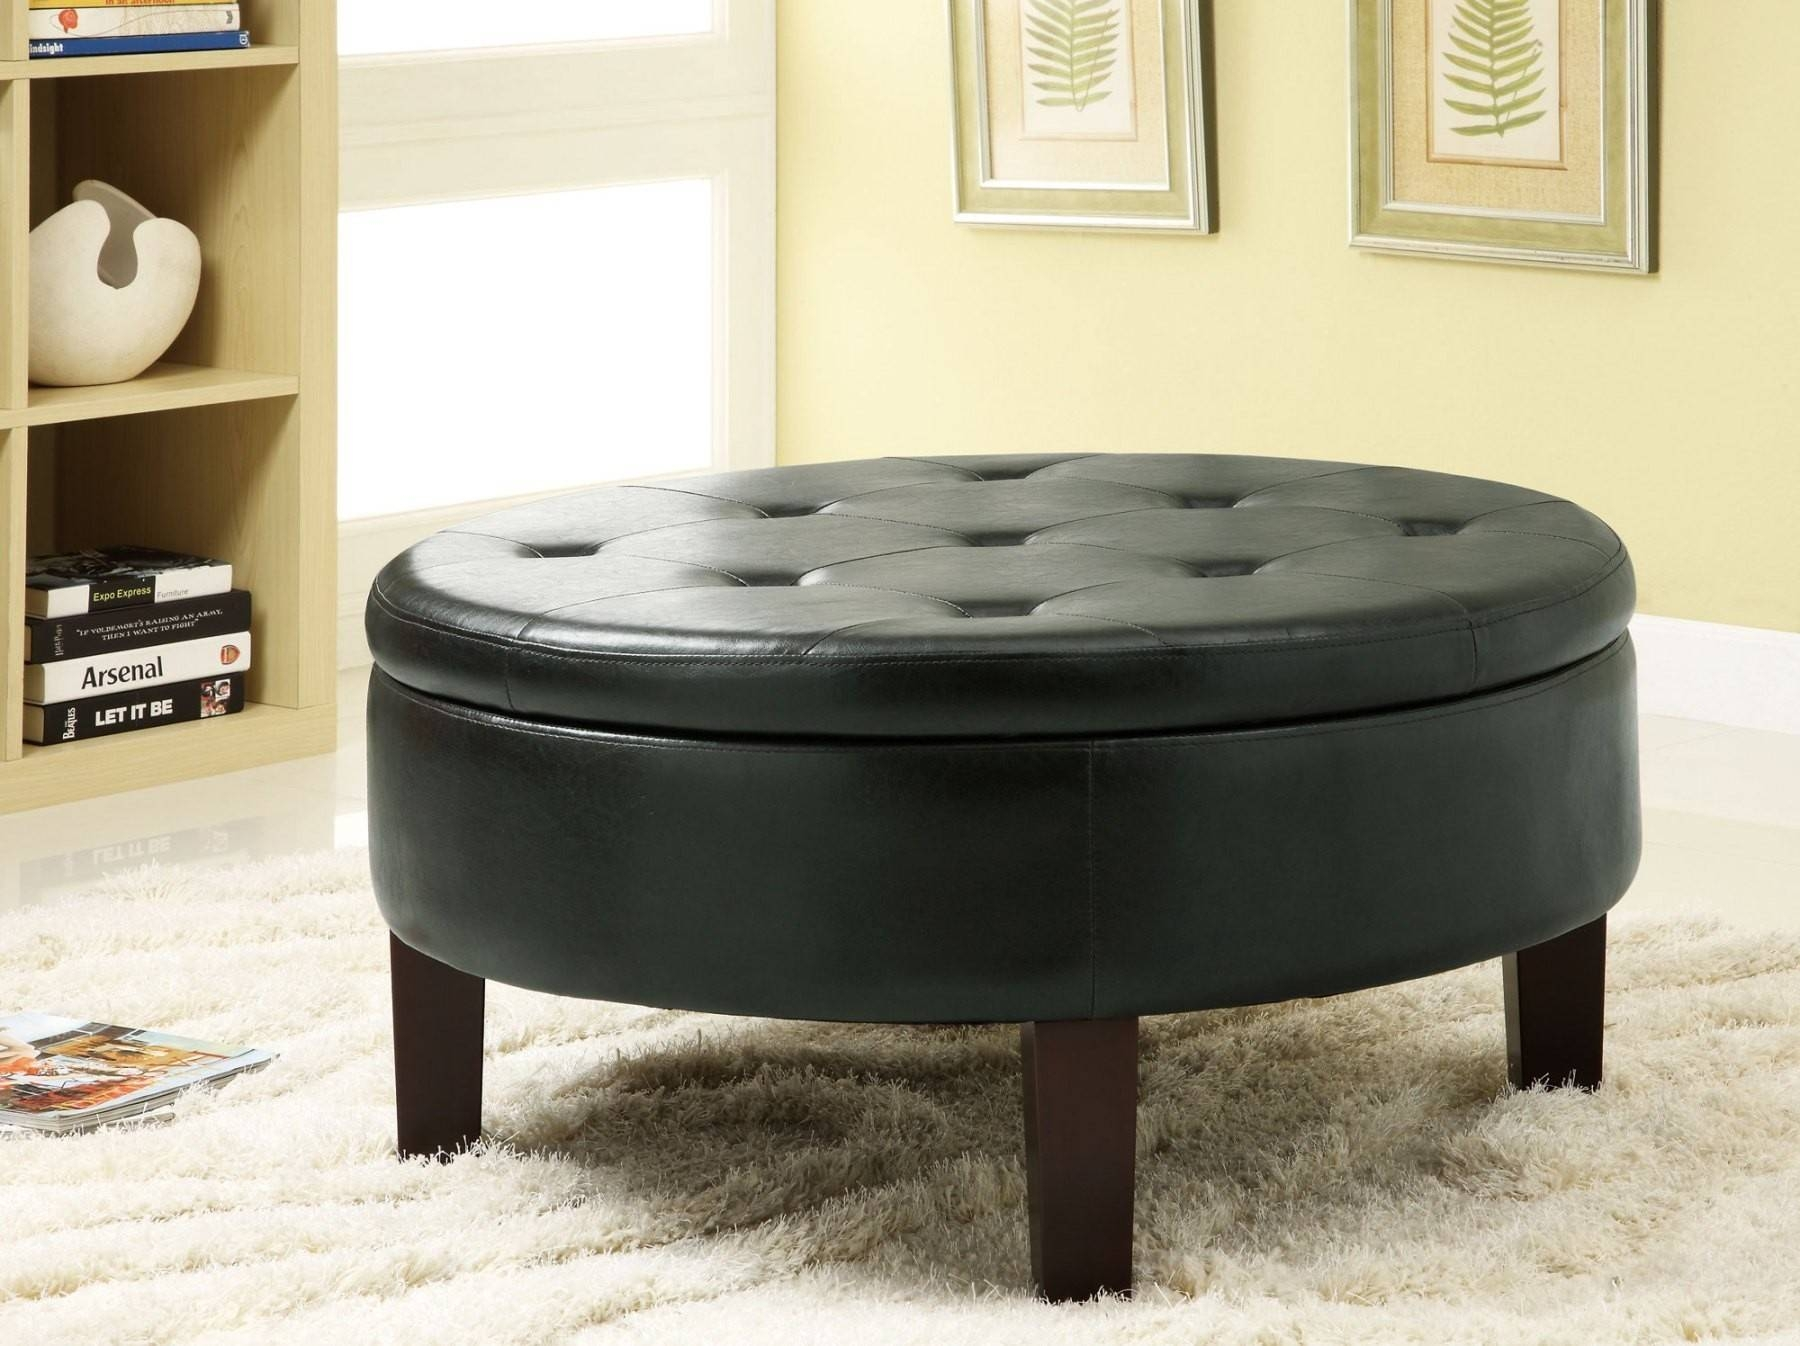 Furniture: Astounding Round Storage Coffee Table Design Ideas regarding Round Storage Coffee Tables (Image 15 of 30)